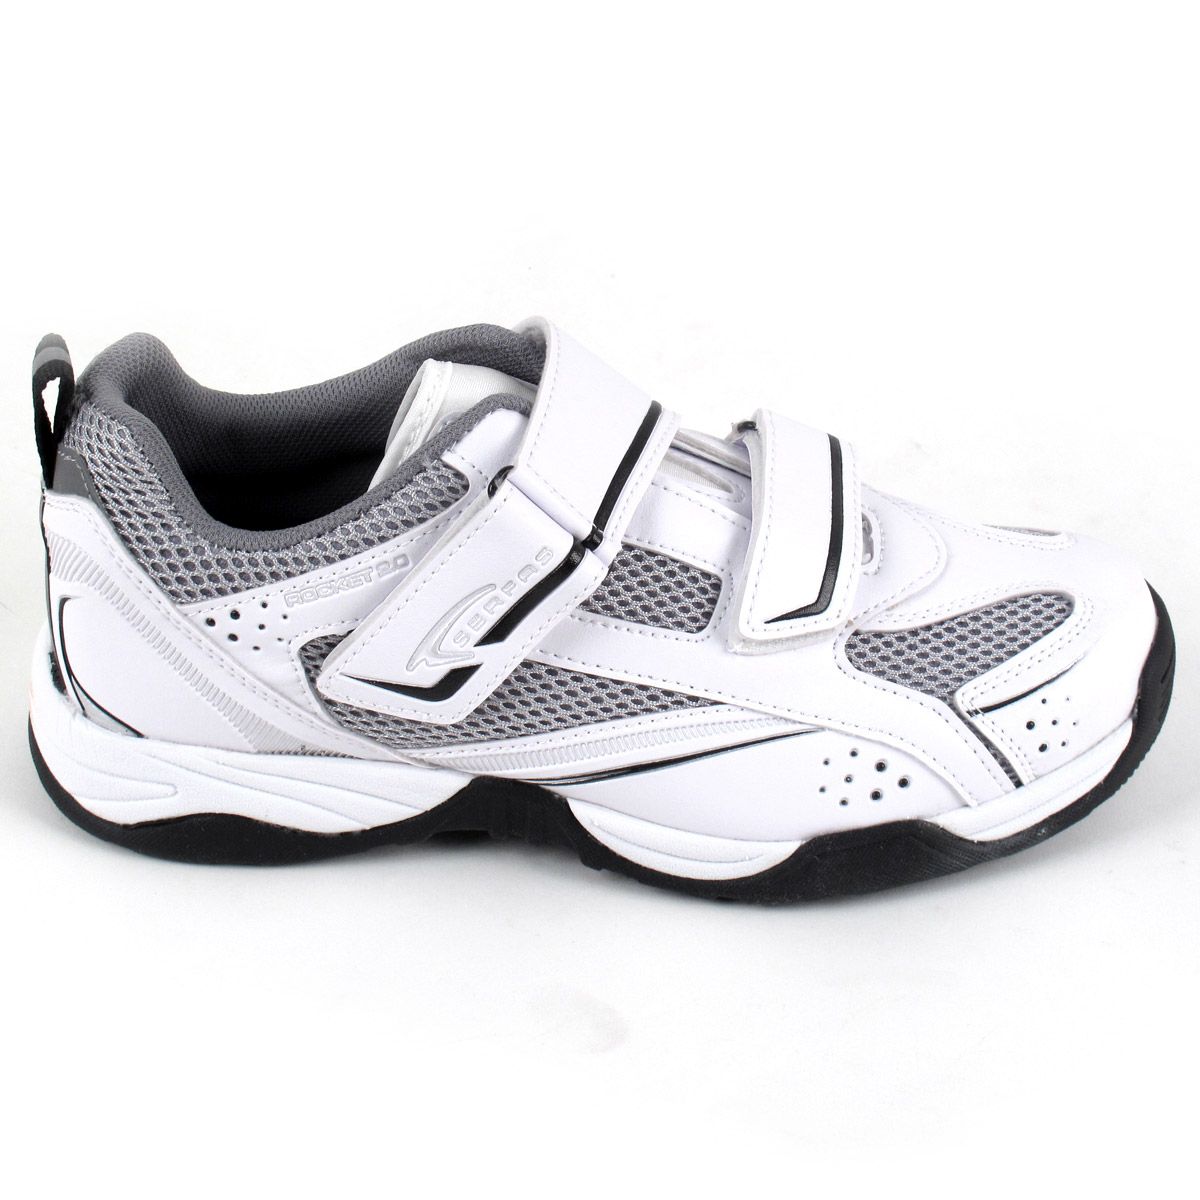 Indoor Cycling Shoes Decoded | Aleah Stander | Fitness Pro